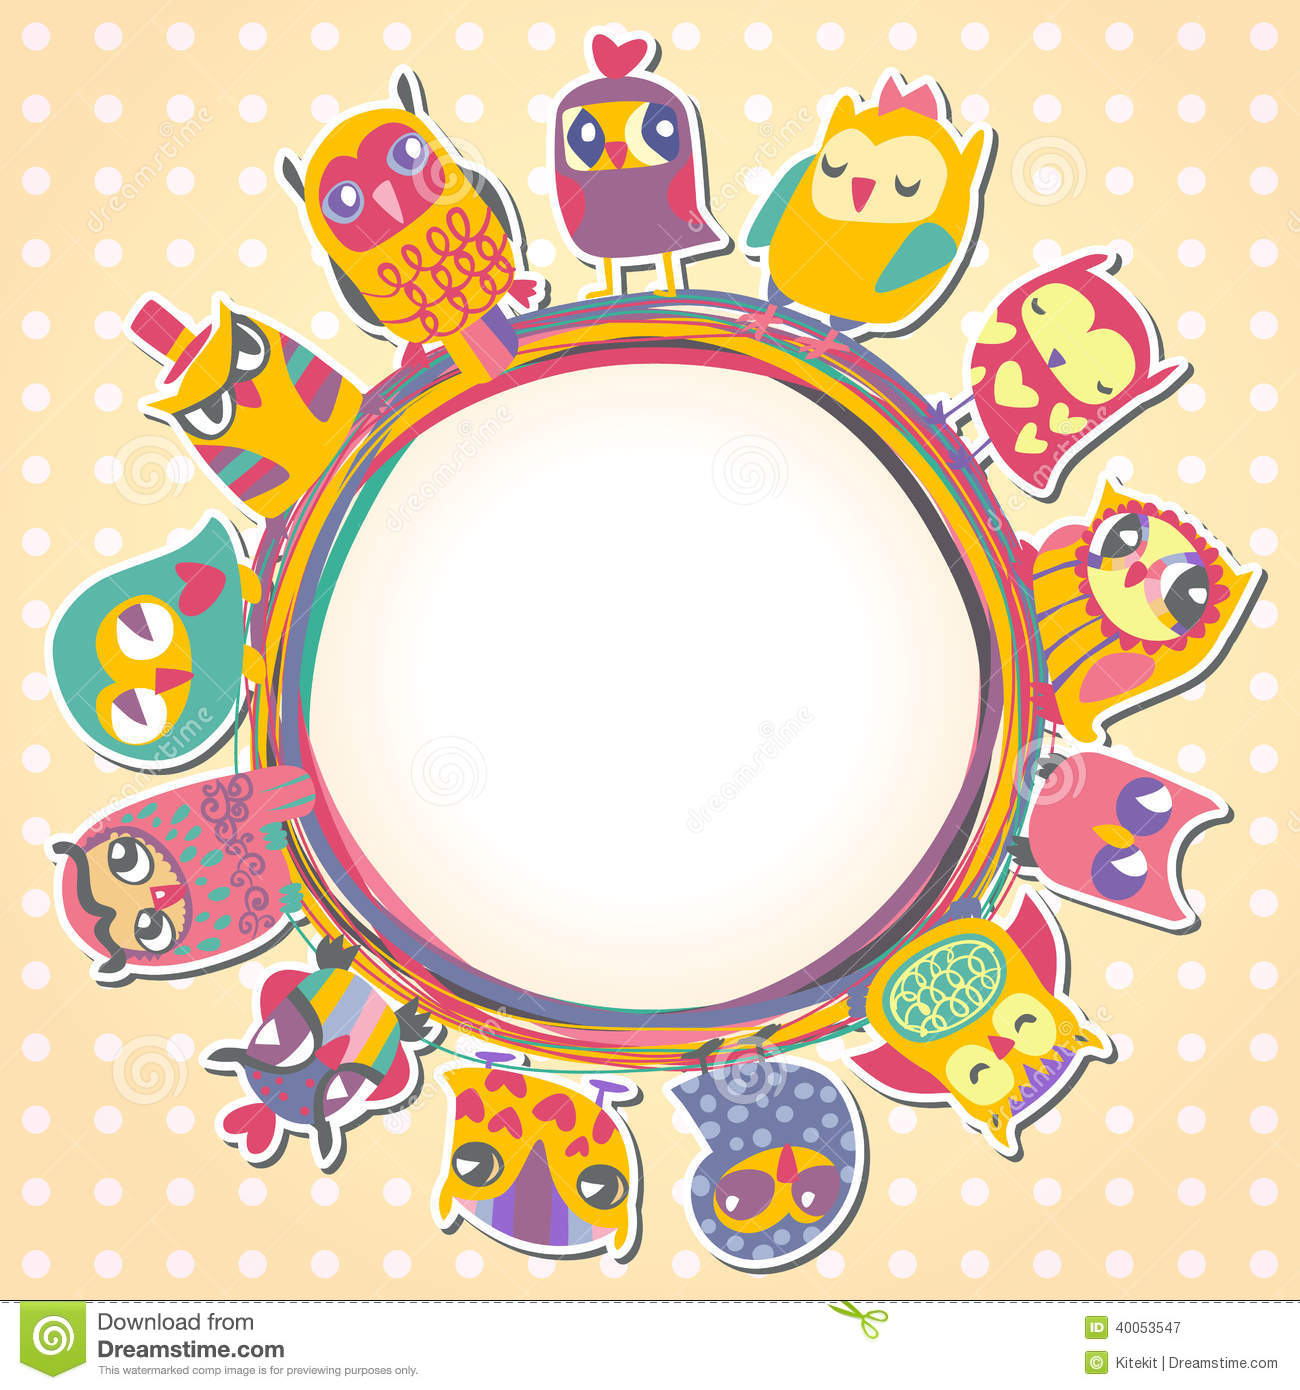 childrens background with multicolored cartoon owls stock vector  - childrens background with multicolored cartoon owls royalty free stockphotography